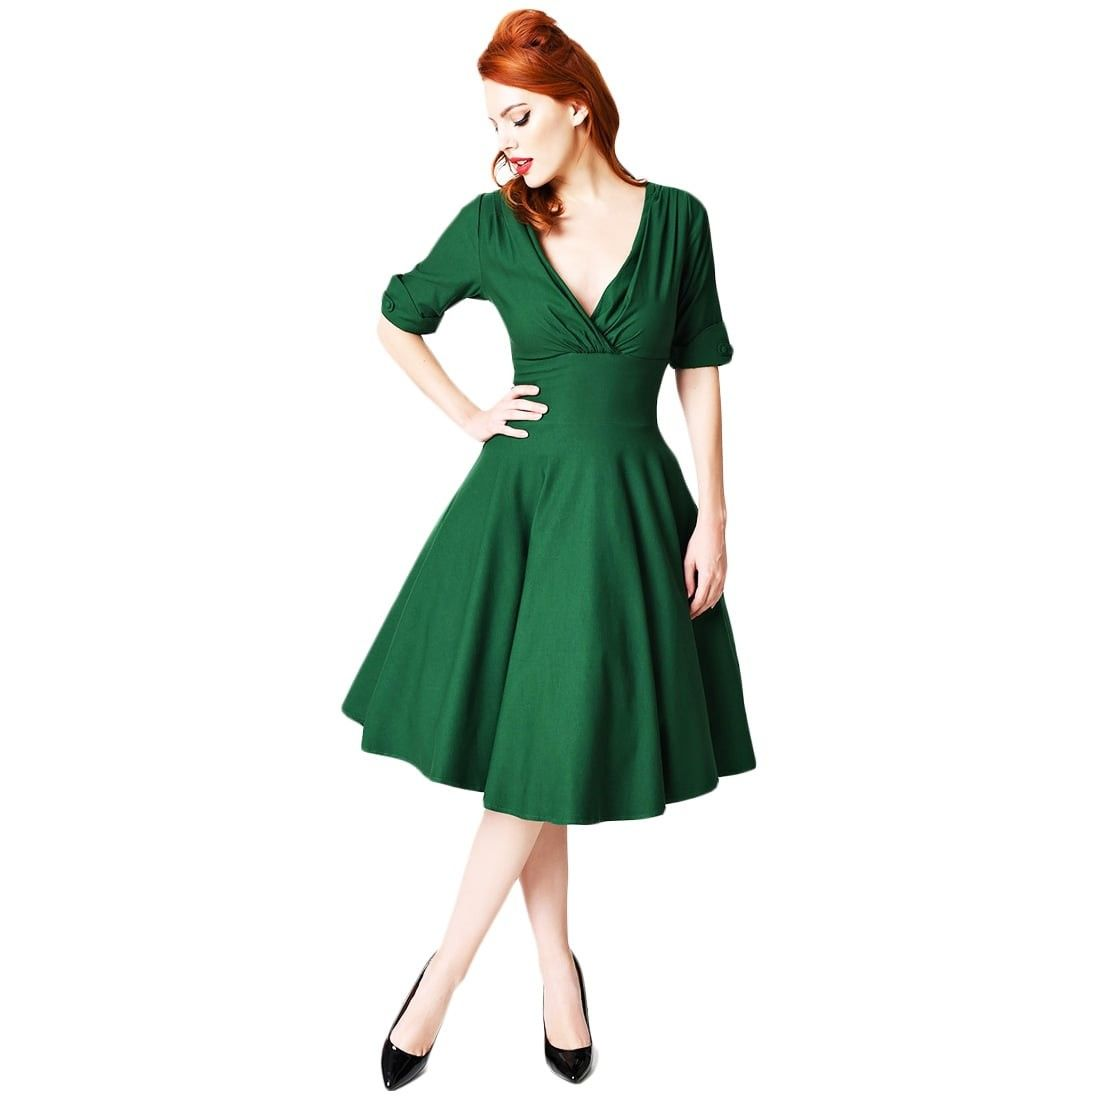 Unique Vintage Delores Dress Green Swing Dress With